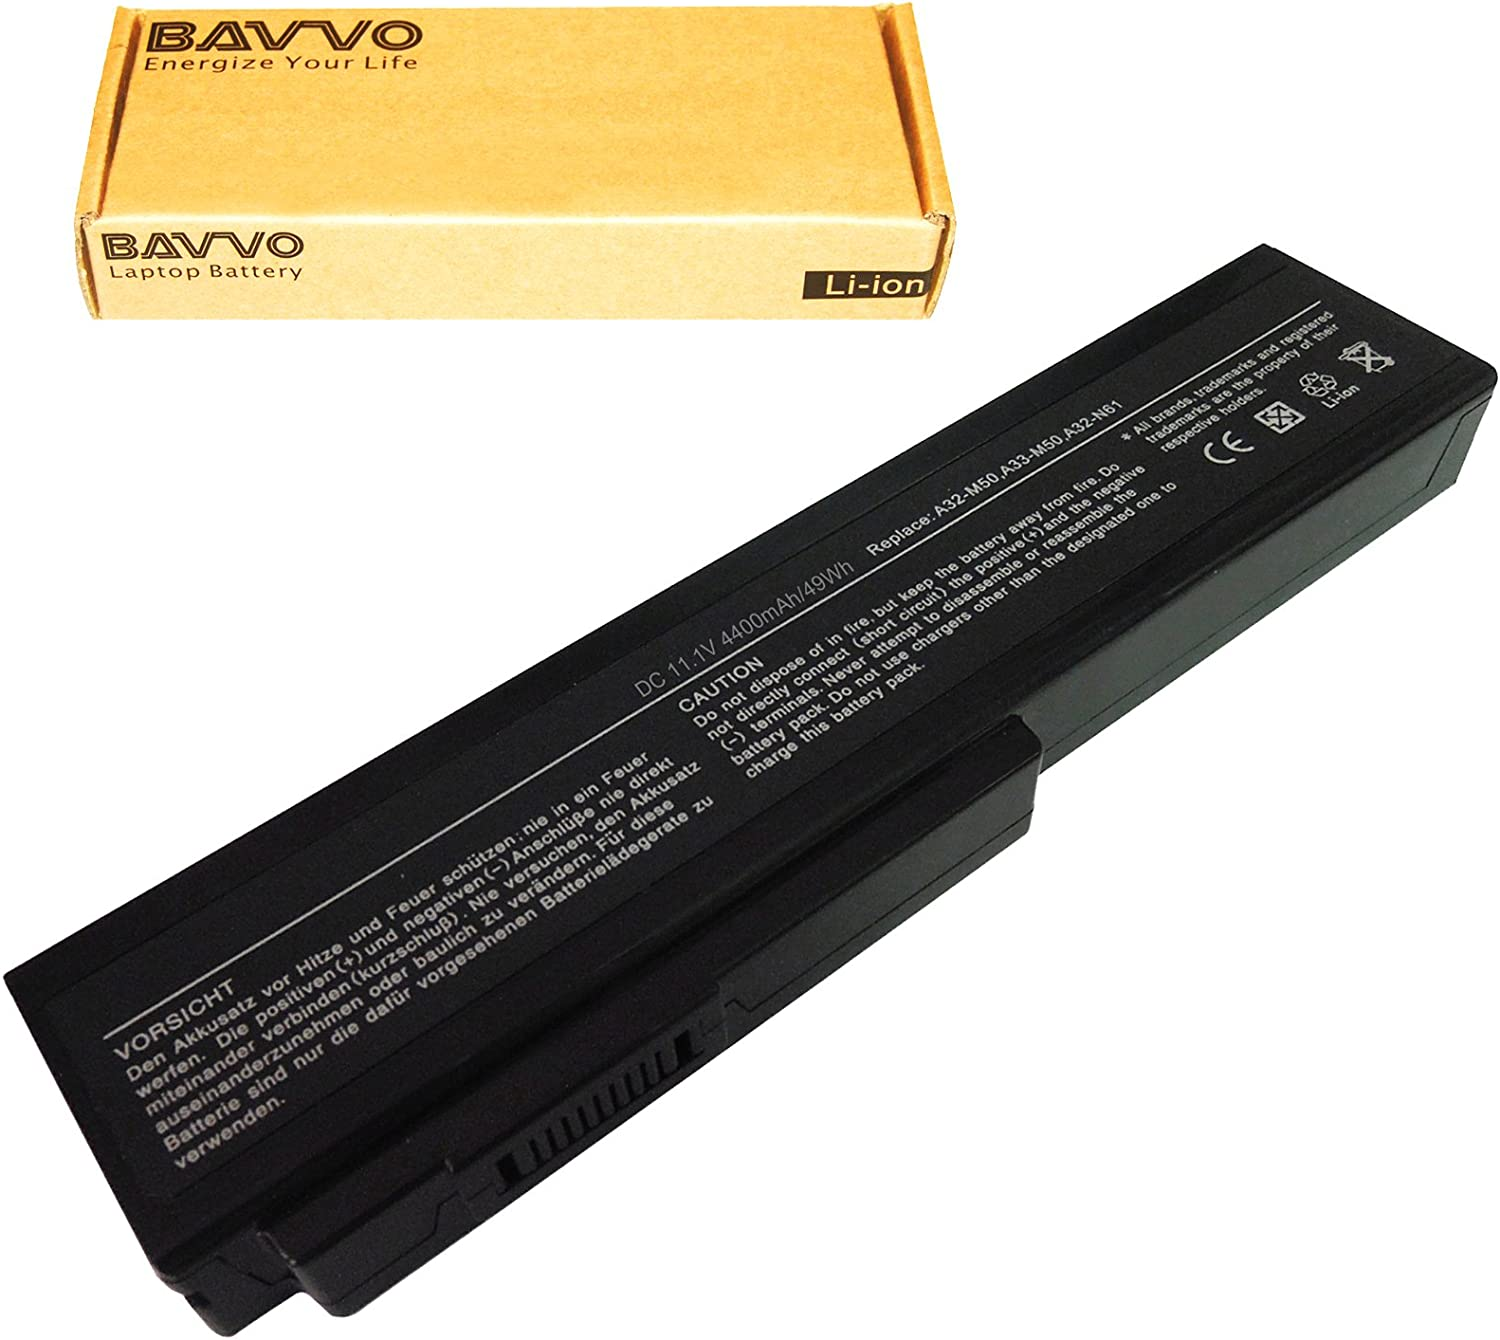 Bavvo Battery Compatible with ASUS A32-M50 A32-N61 A33-M50 A32-X64 L072051 15G10N373830 15G10N373800 90-NED1B2100Y?